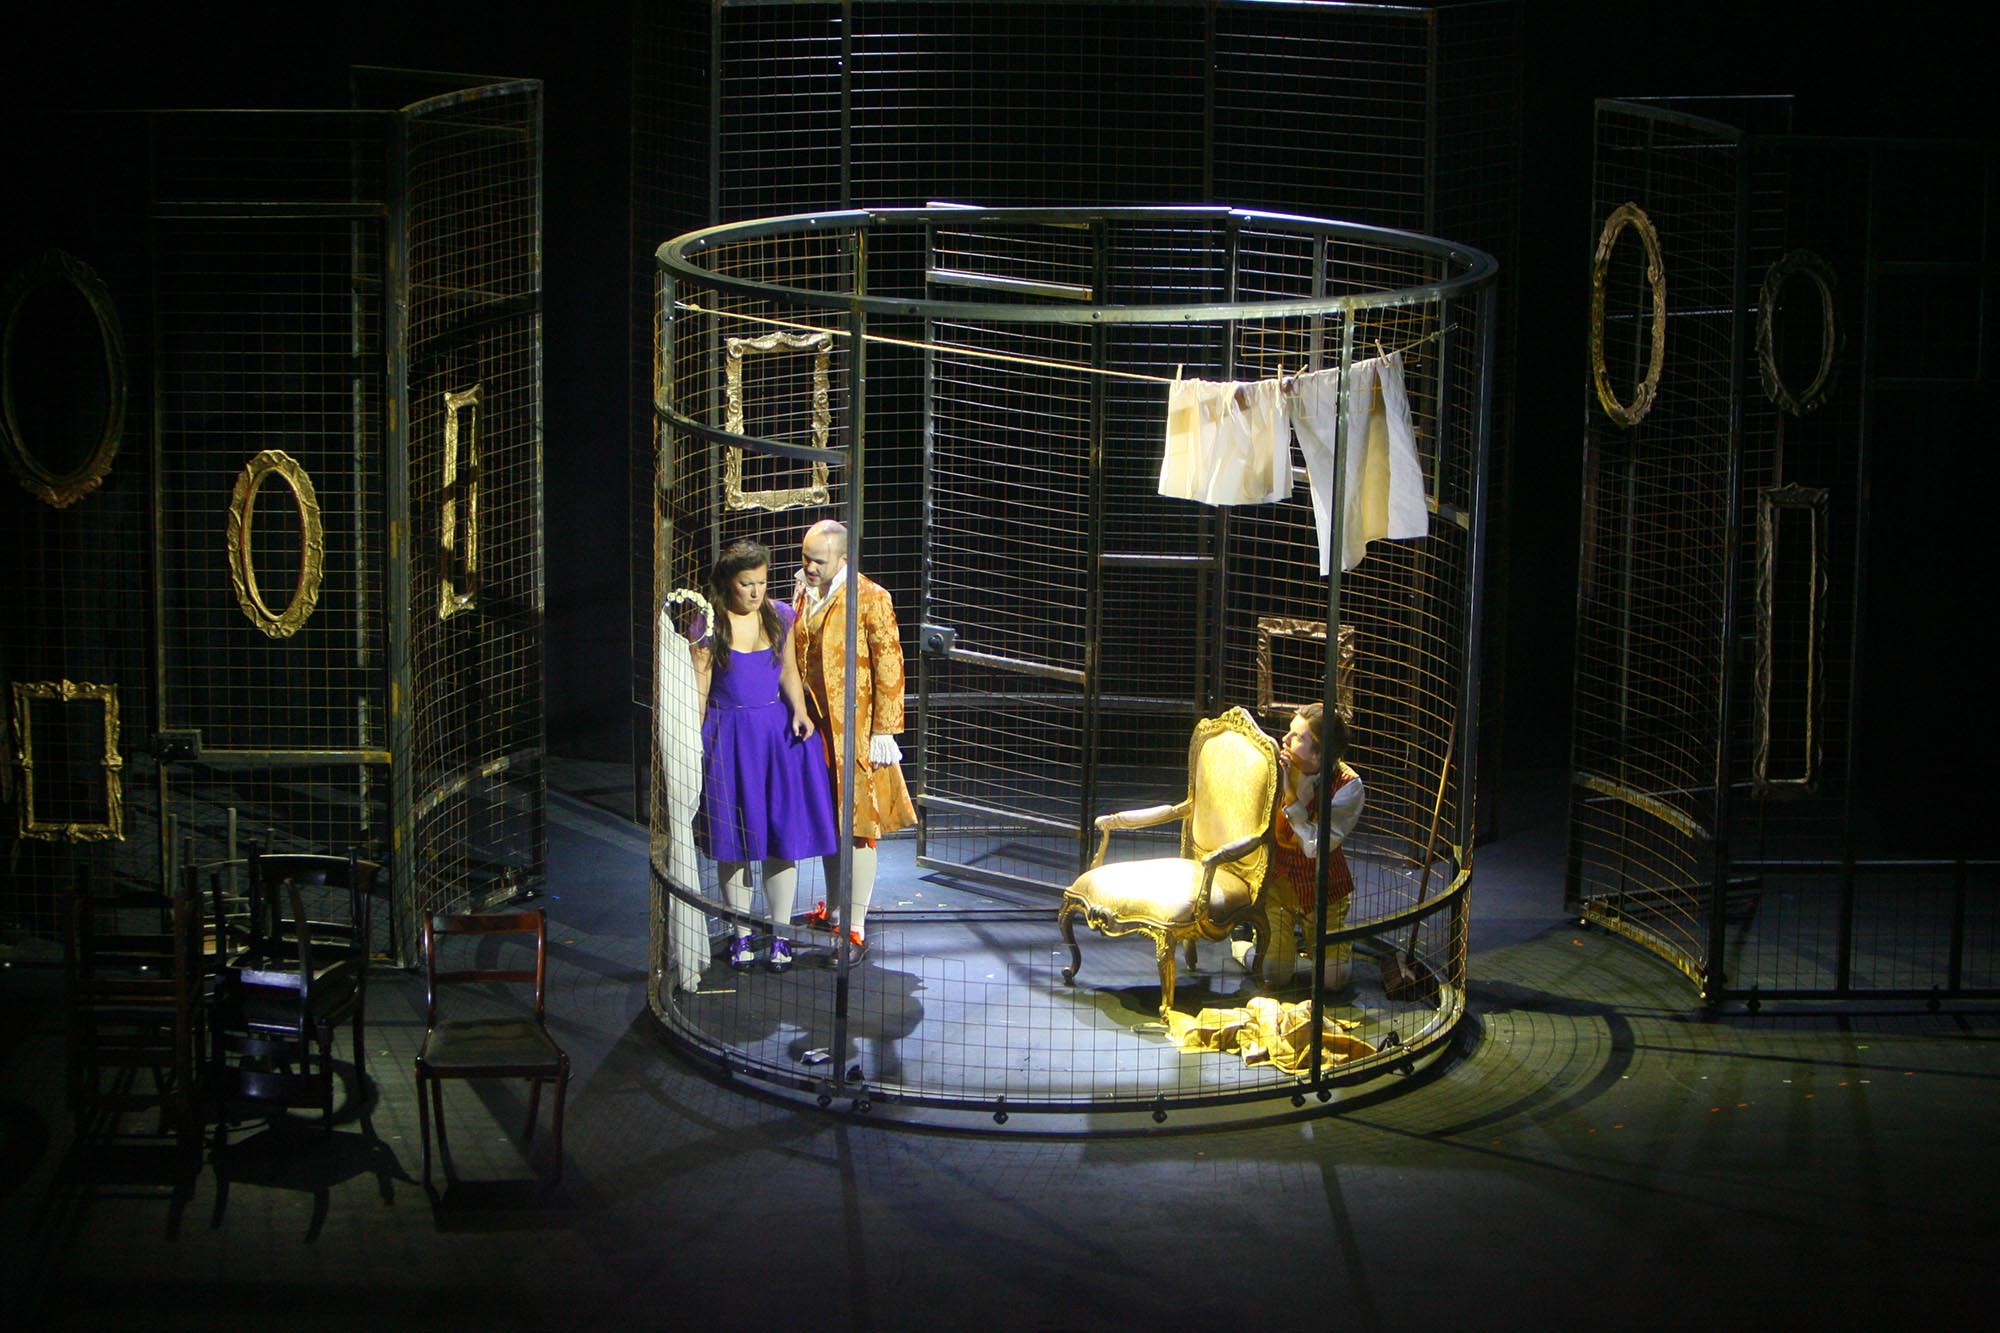 Le-nozze-di-Figaro-opera-directed-by-Jacopo-Spirei--in-London-2